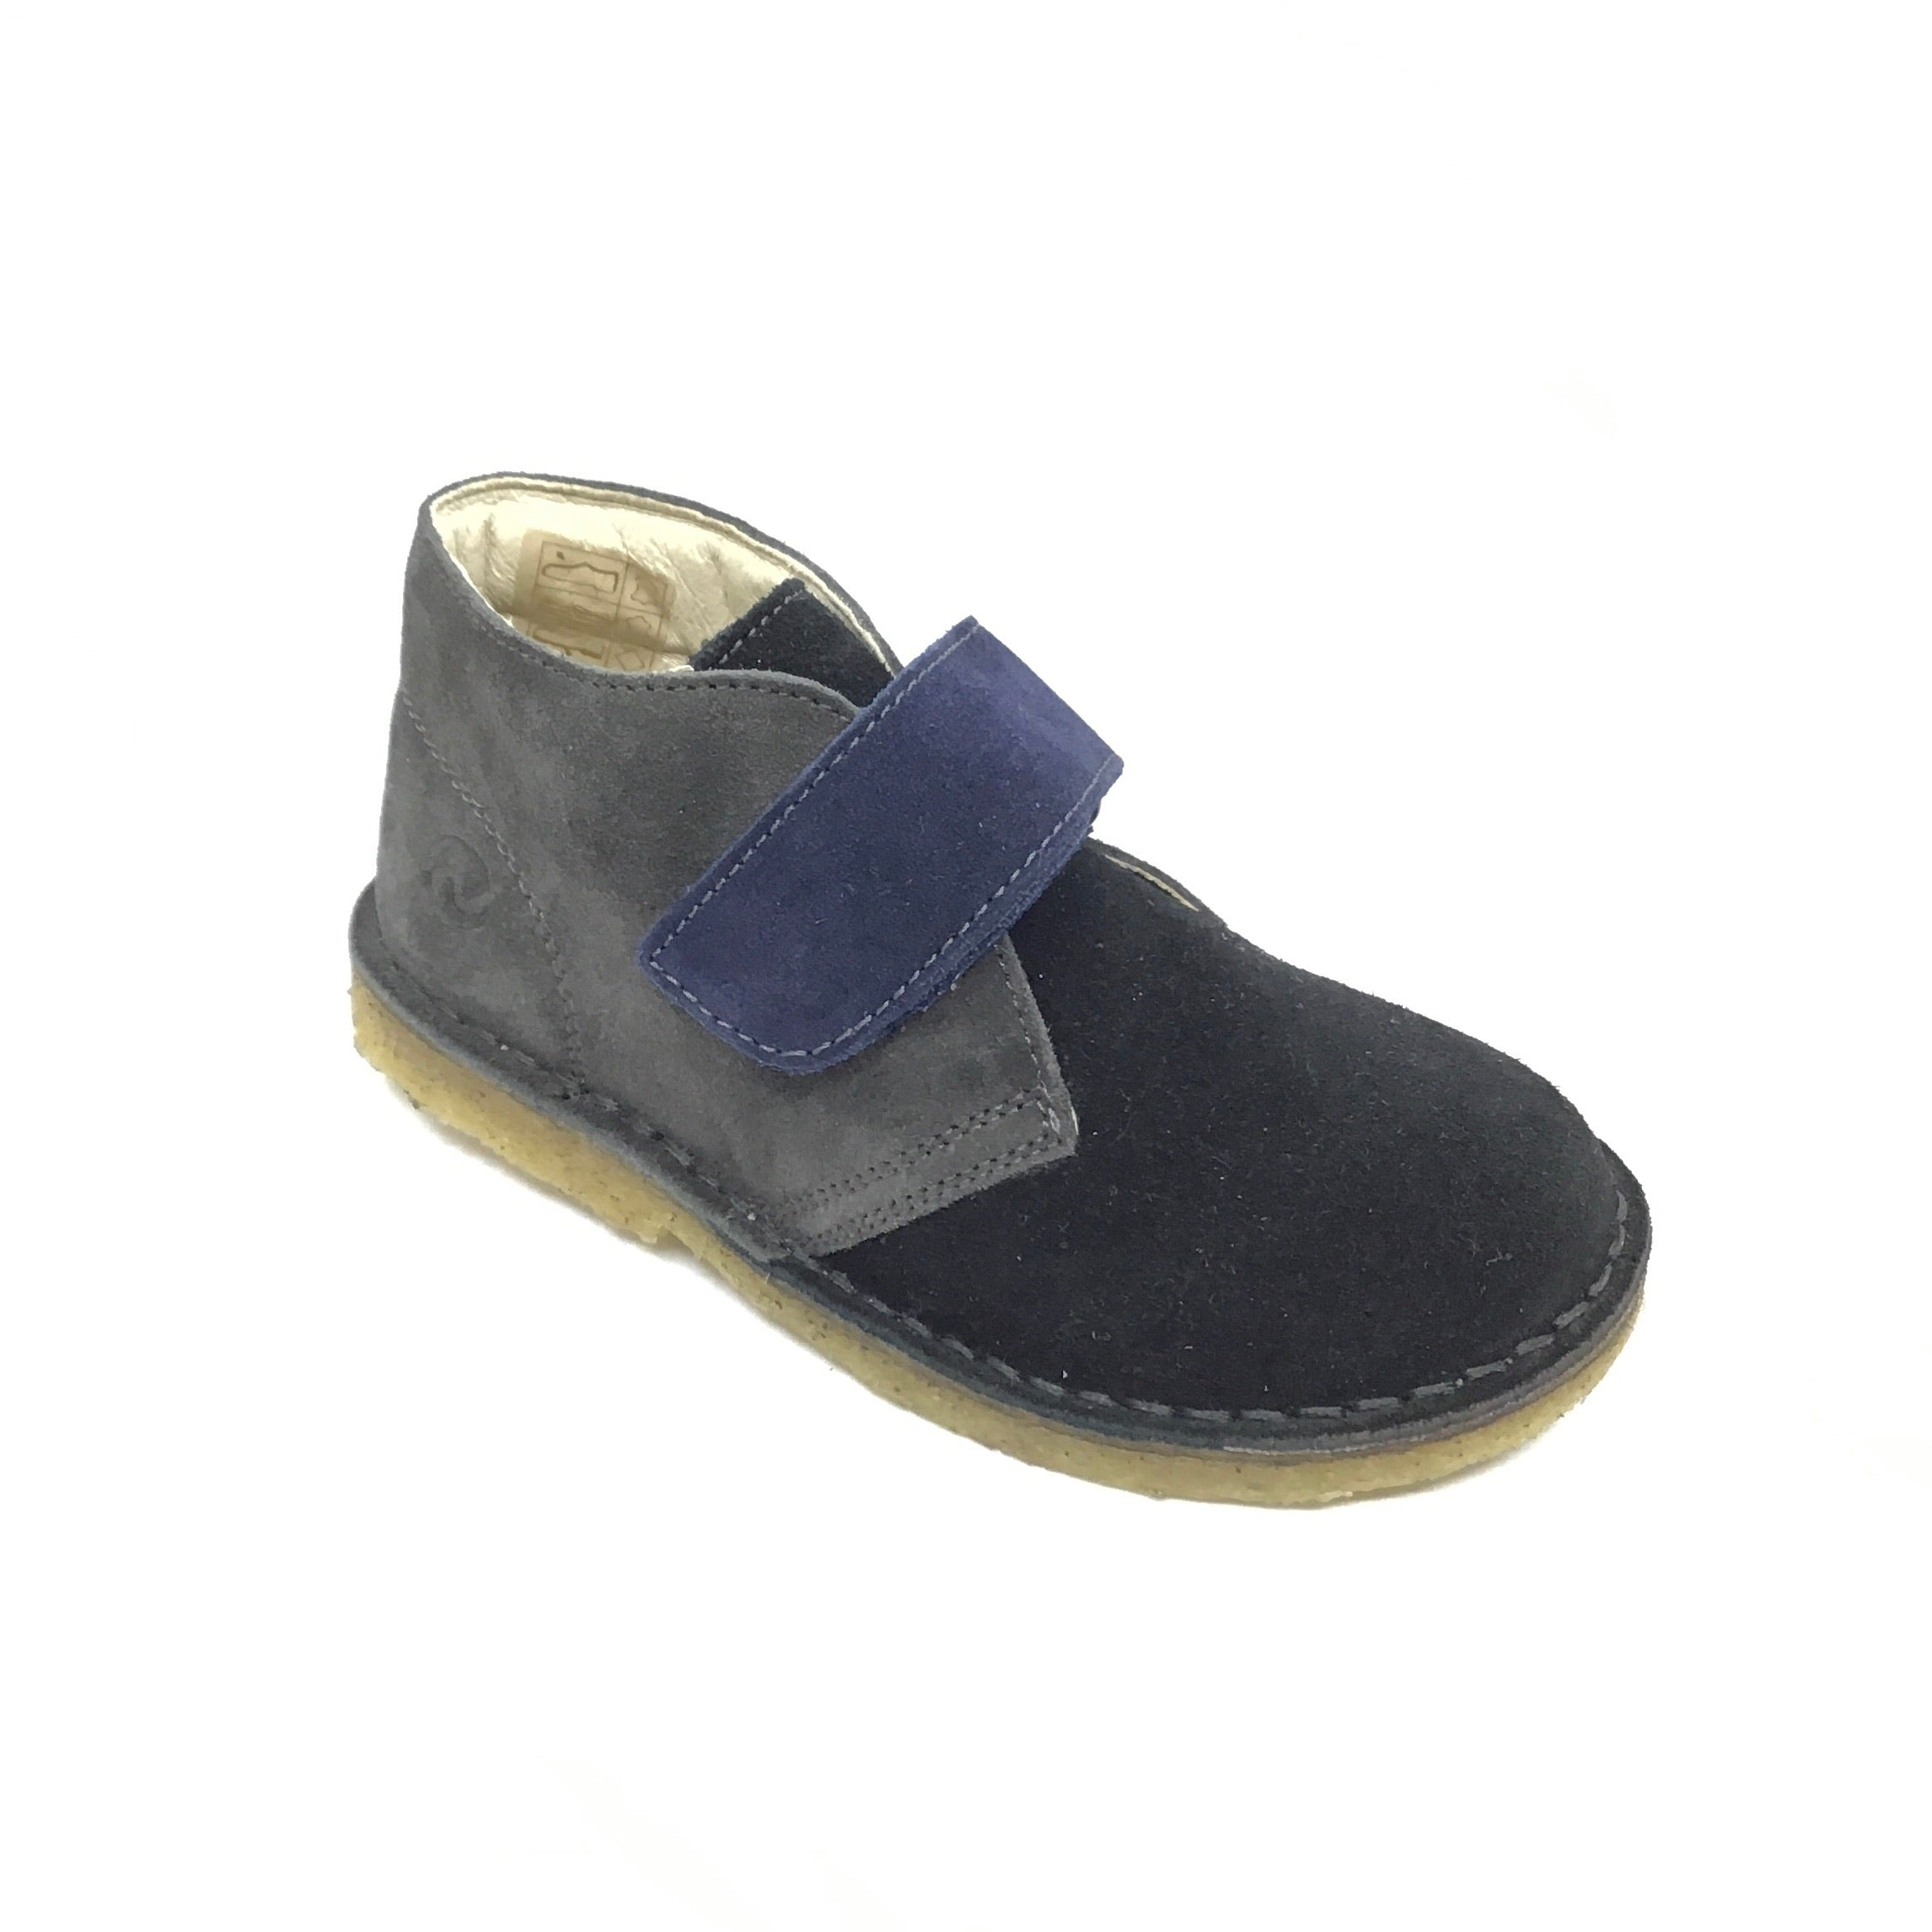 Naturino Gray and Black Suede Velcro Shoe